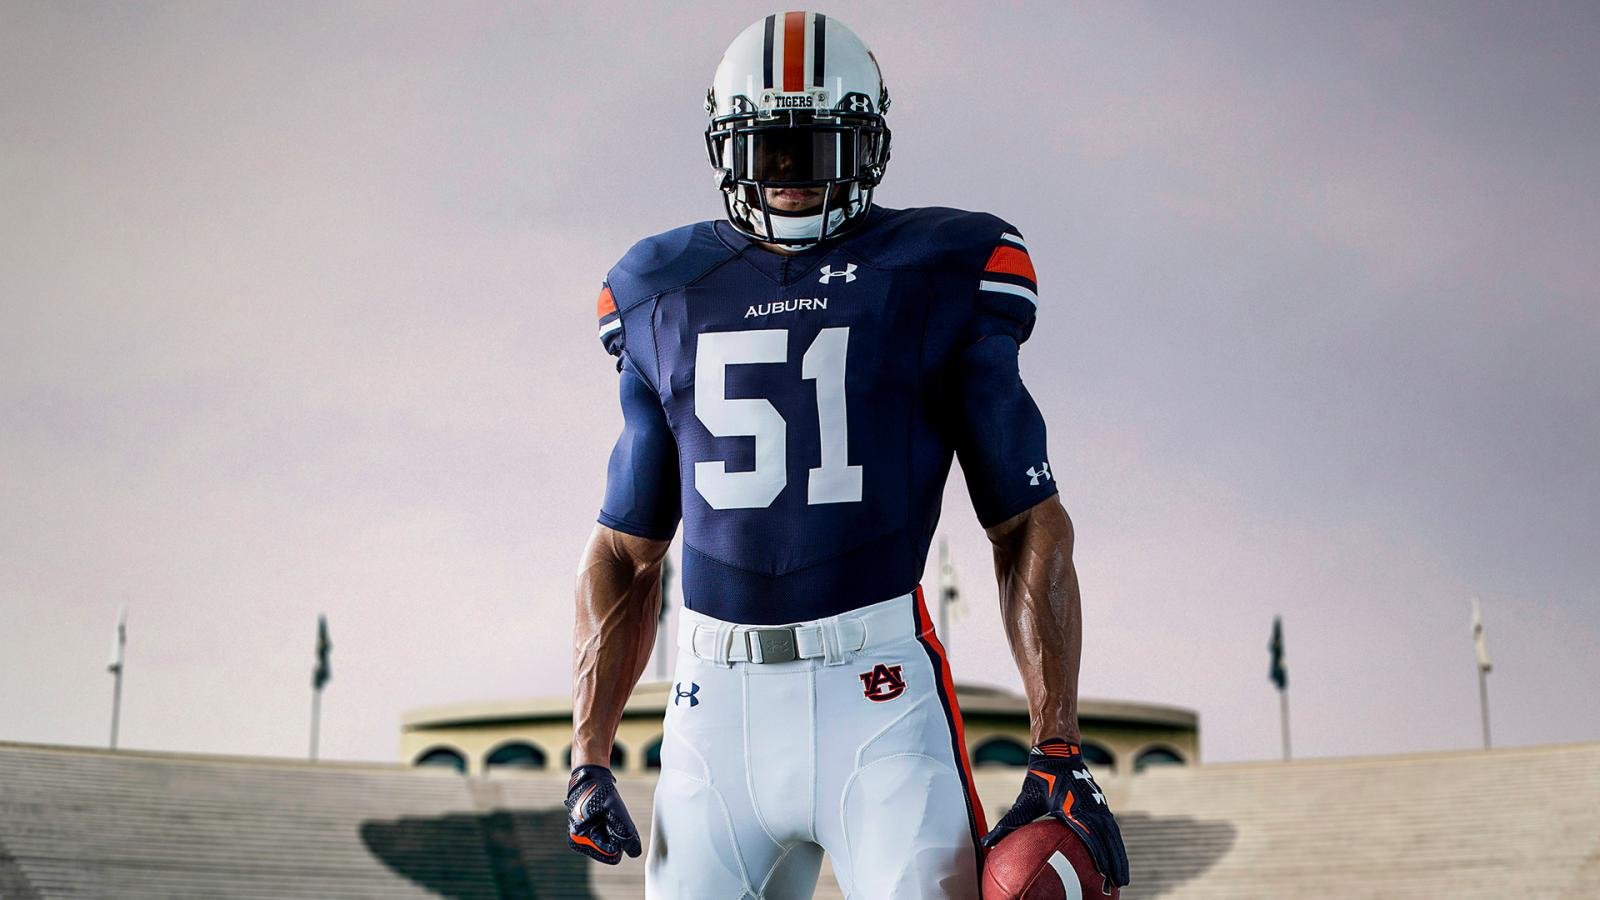 Cool Under Armour Wallpapers 20 of 40 with Auburn Football Uniform - HD Wallpapers | Wallpapers ...